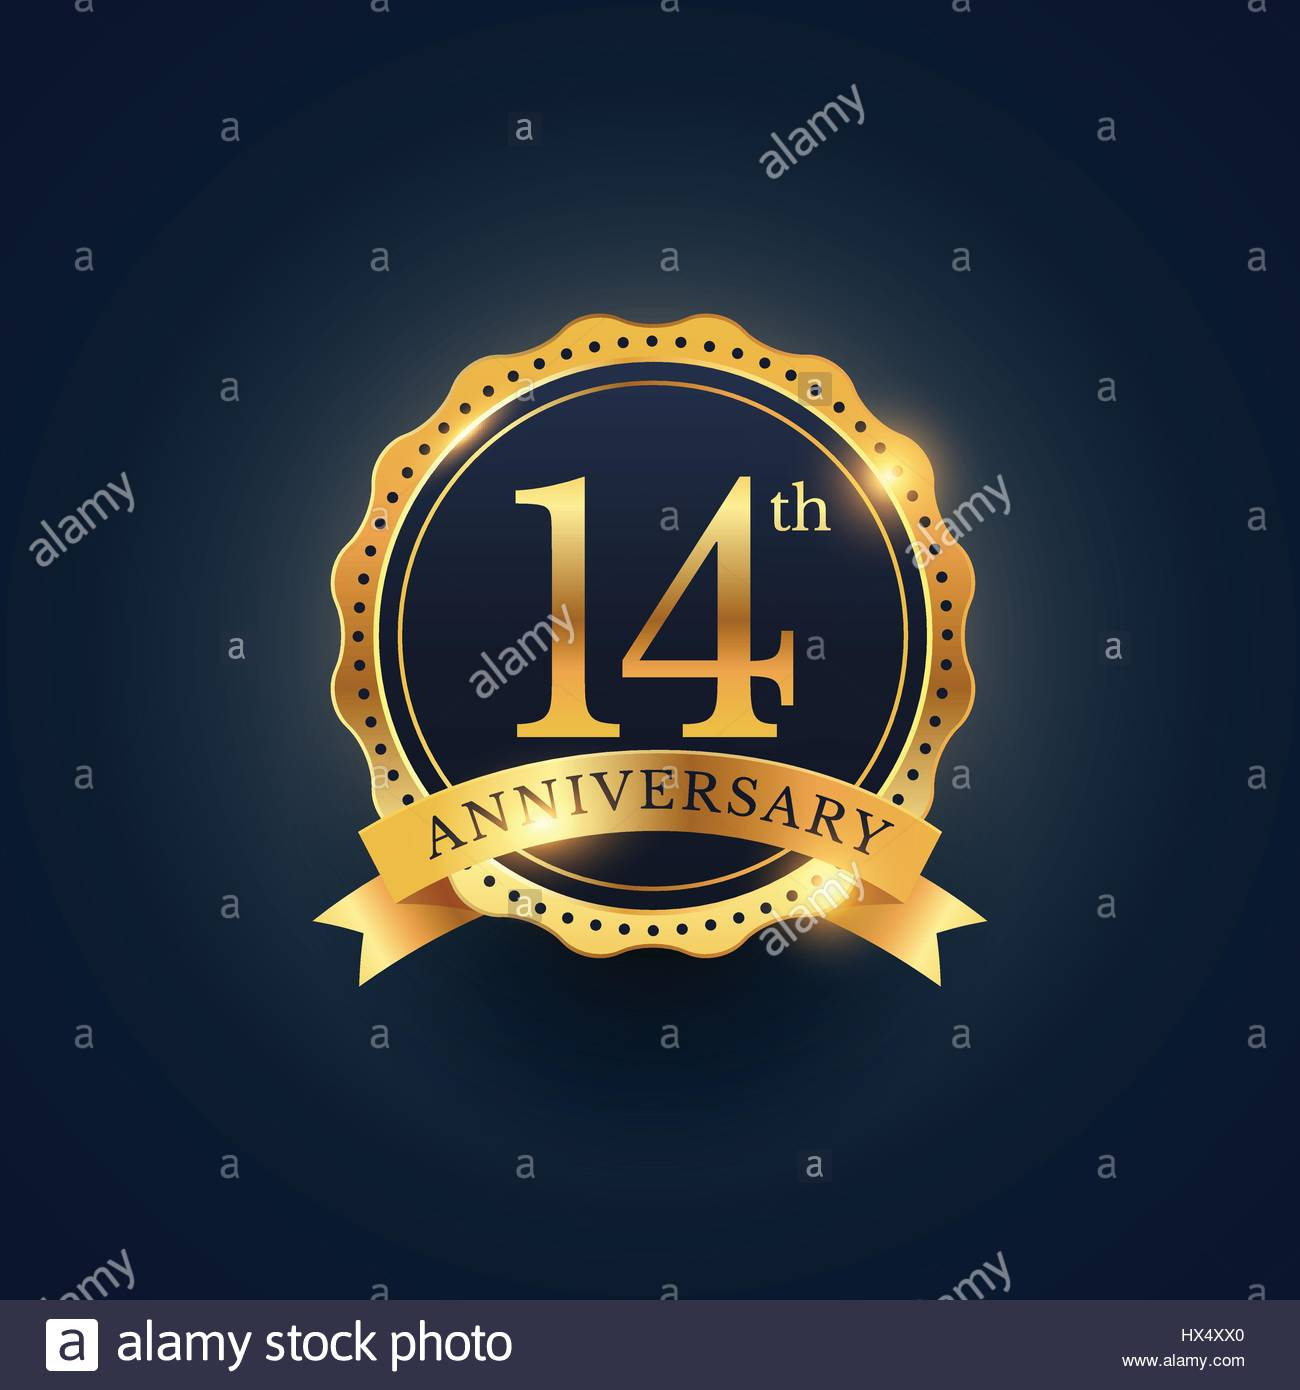 14th anniversary symbol choice image symbol and sign ideas 14th anniversary symbol images symbol and sign ideas 14th anniversary celebration badge label in golden color biocorpaavc